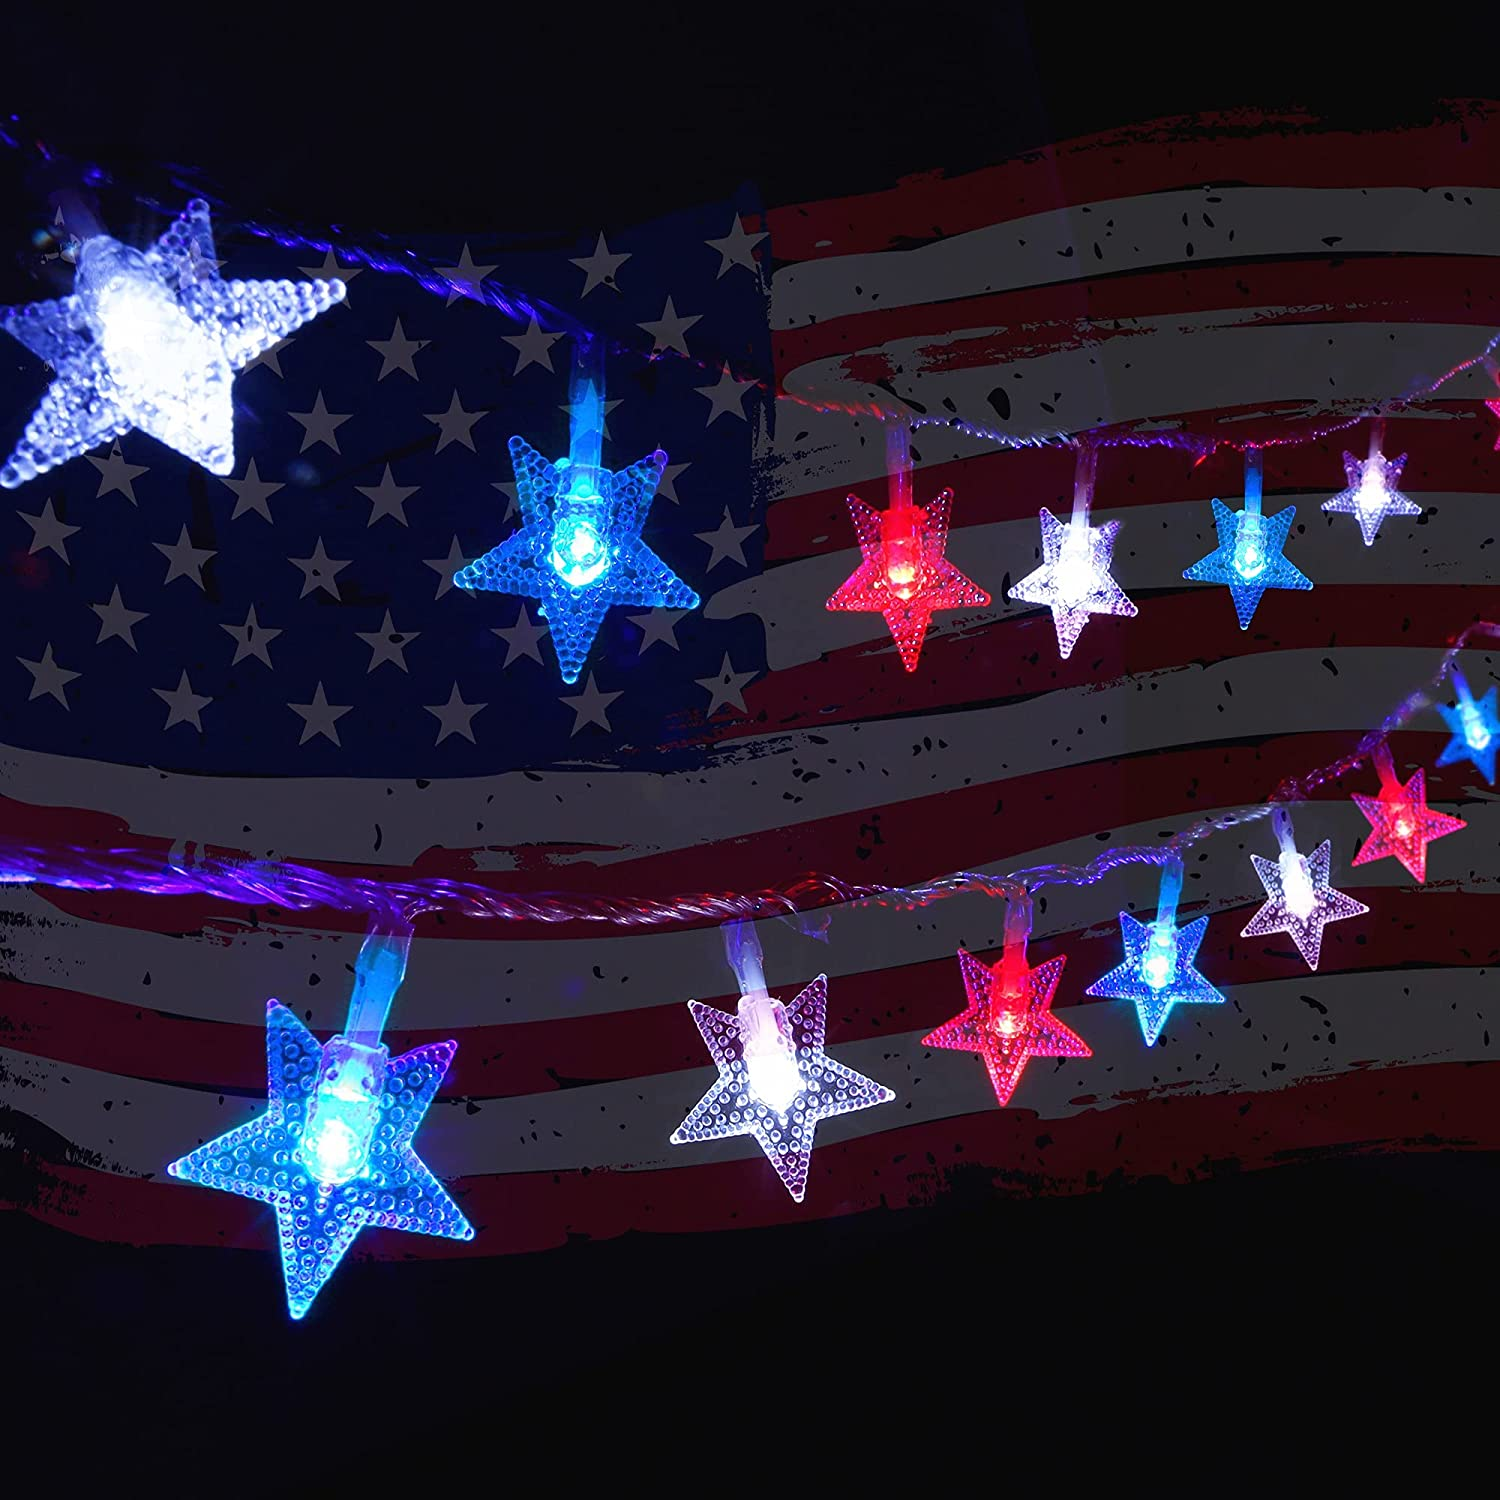 Twinkle Star 100 LED 49 FT Star String Lights, July 4th Plug in Patriotic Fairy String Light Waterproof, Extendable for Indoor Outdoor Independence Day Party Garden Decoration, Red & Blue & White